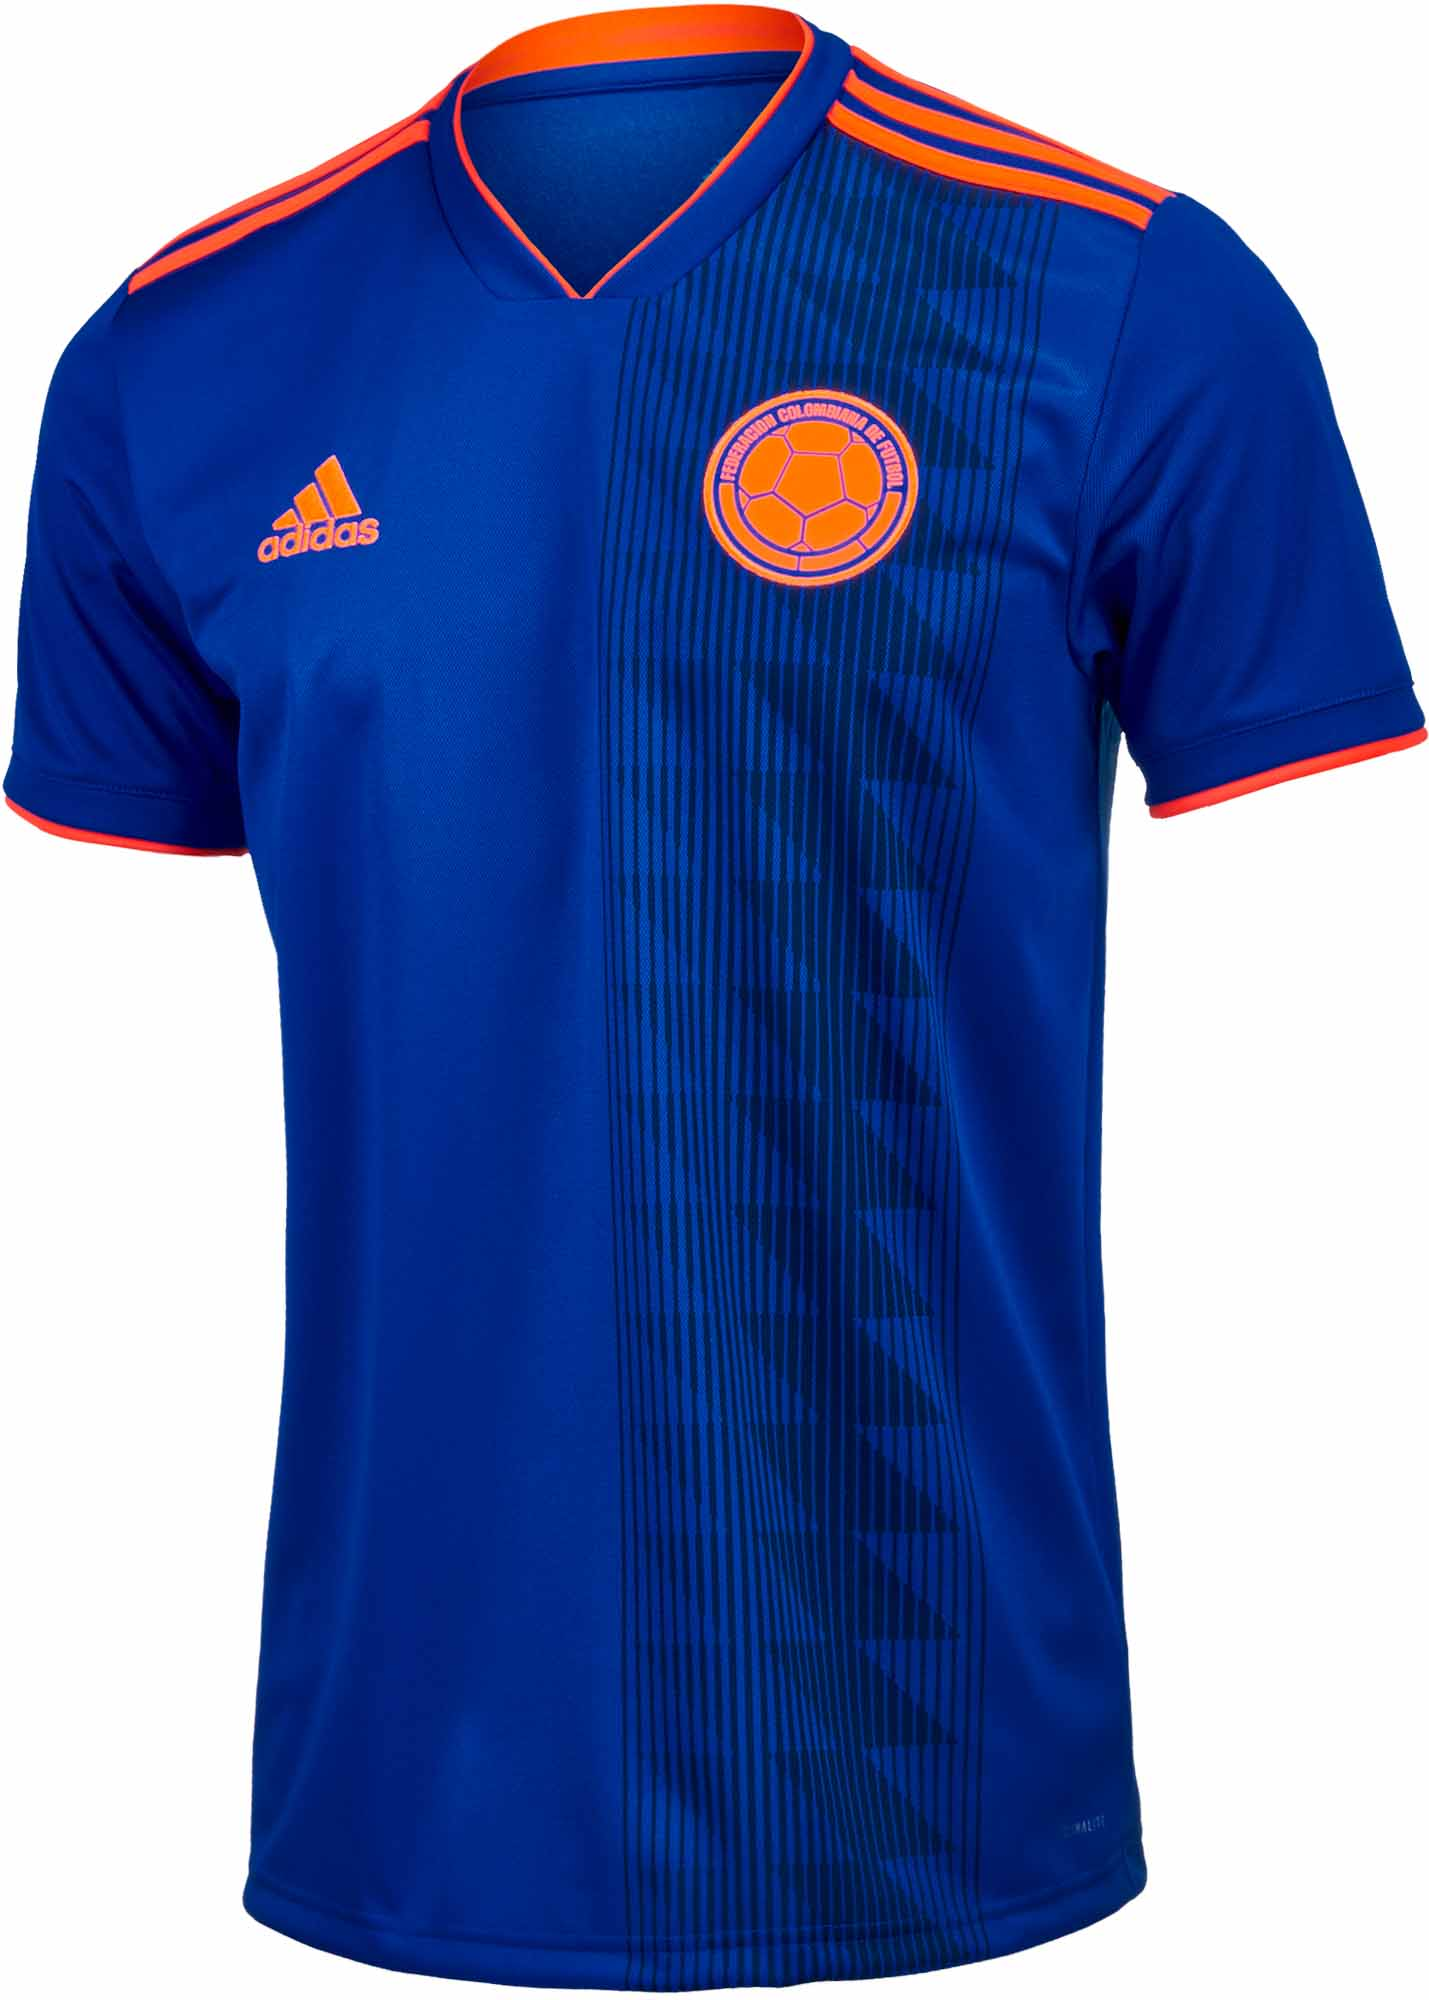 adidas Colombia Away Jersey 2018 19